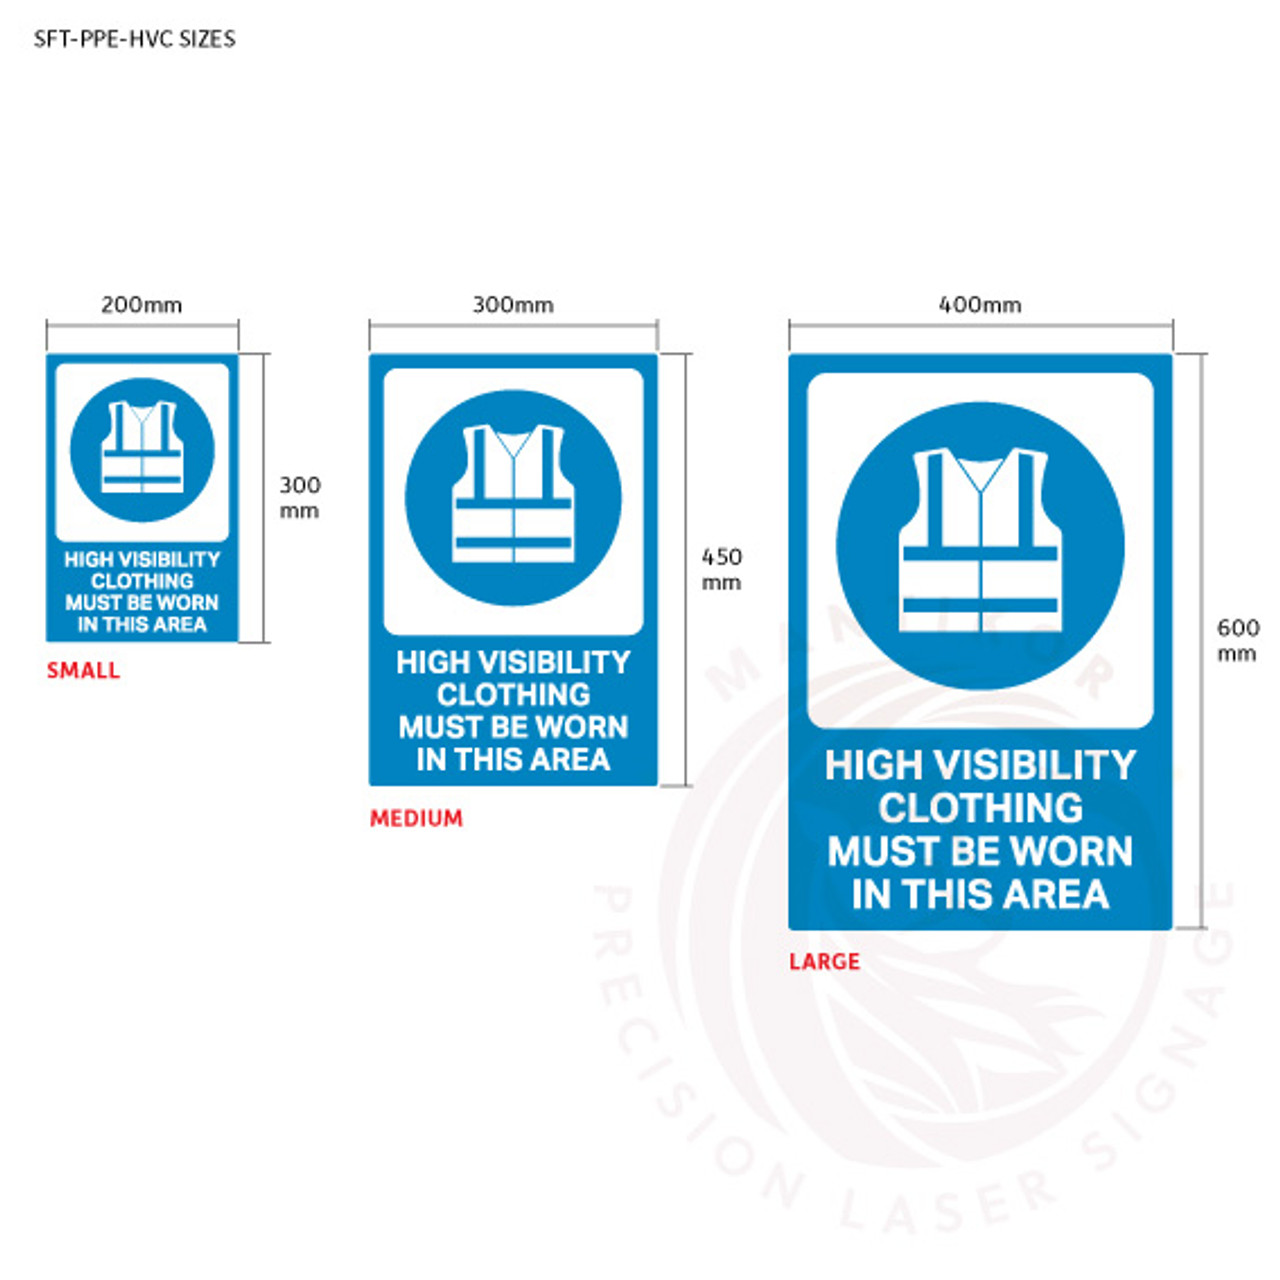 PPE Safety Signage - High visibility clothing sign sizes